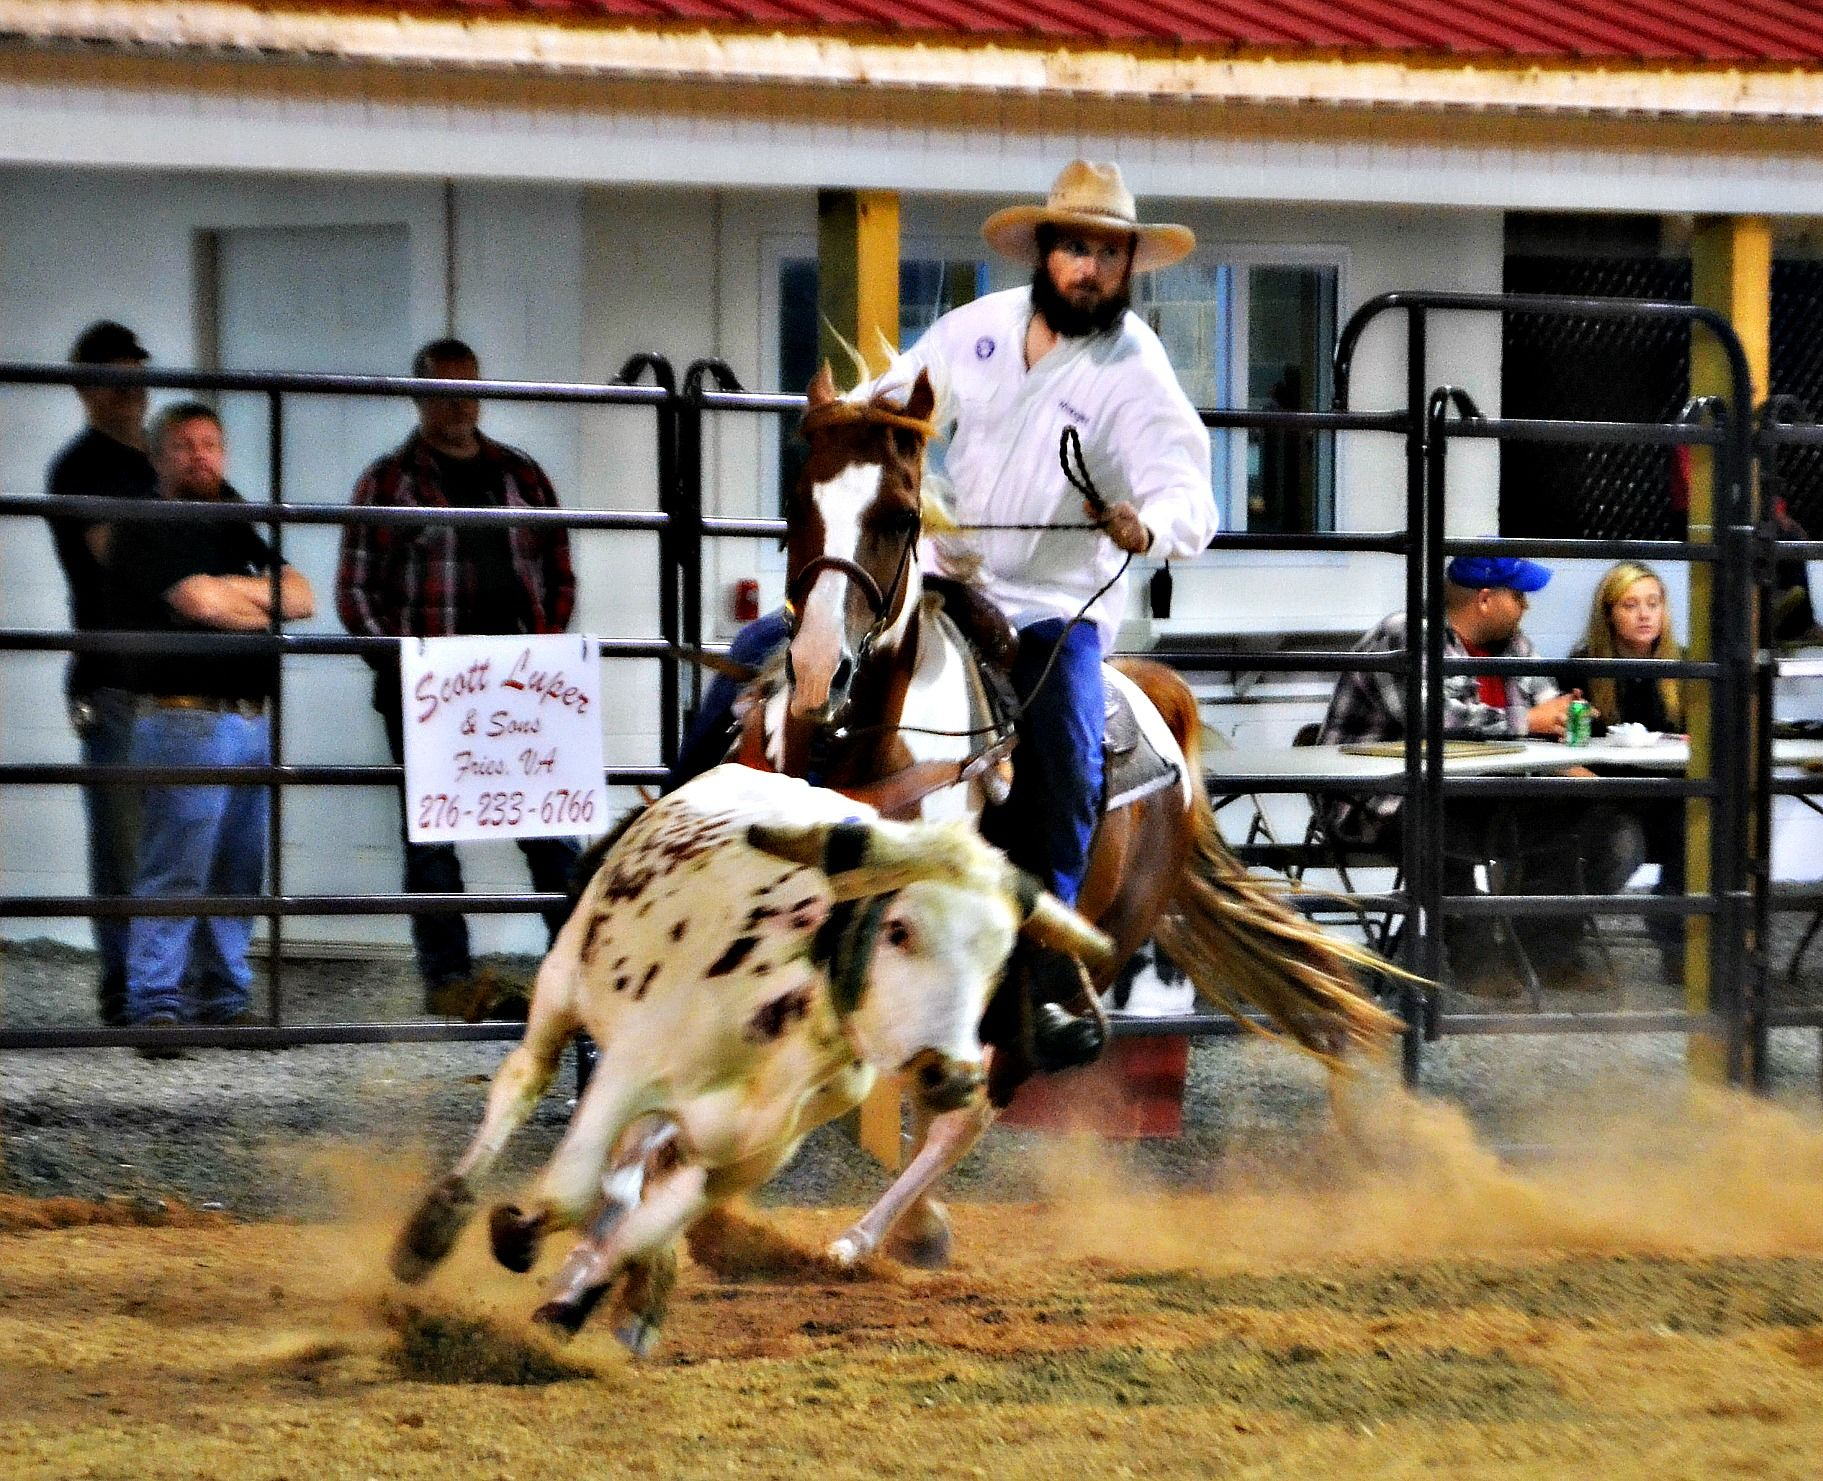 Ranch Rodeo Photography featuring Owner, Jason Burcham of Burcham's Mini Blessings of Fries, VA.